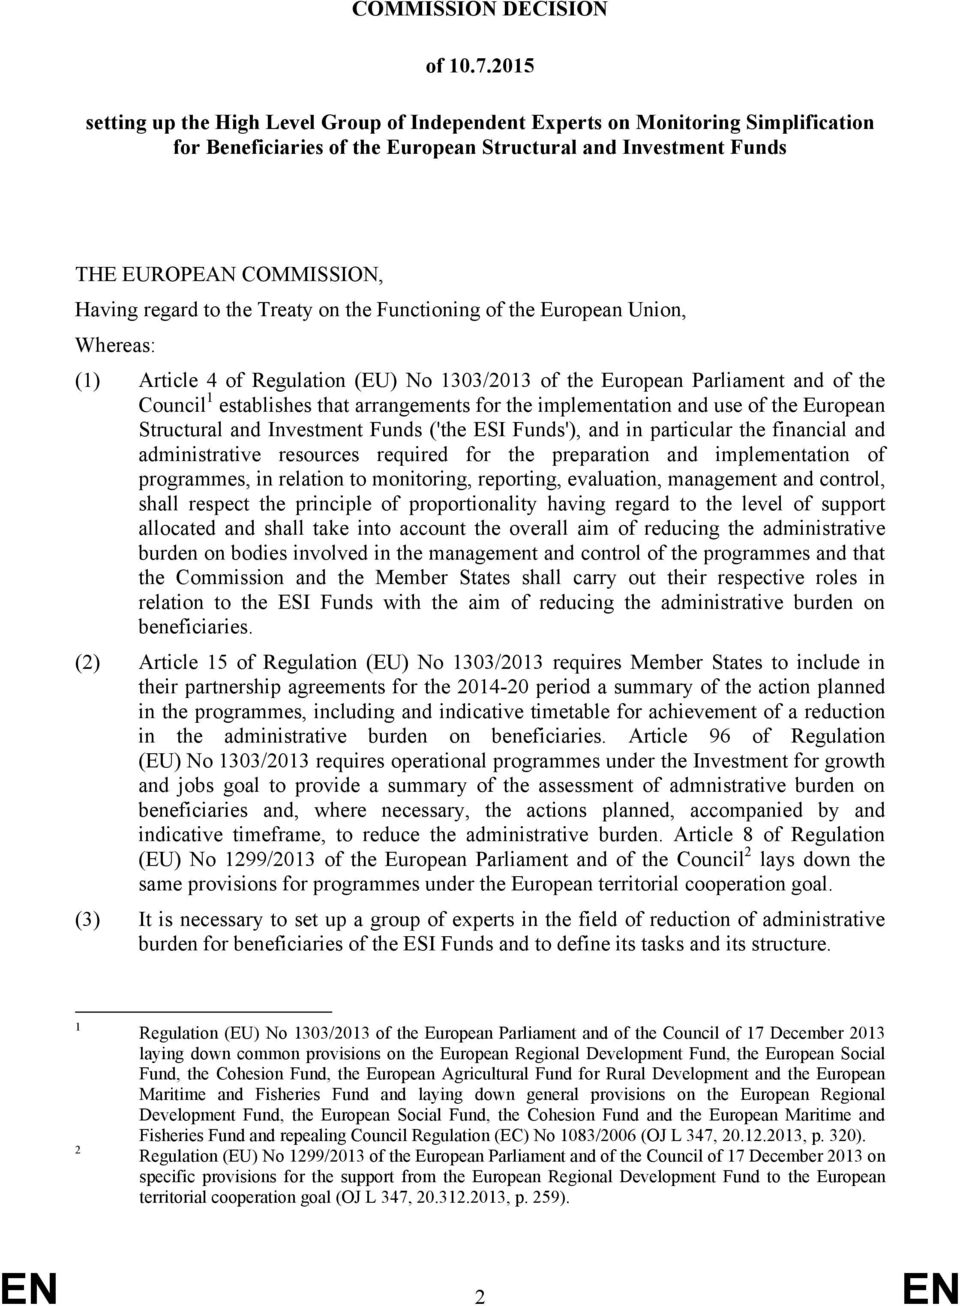 the Treaty on the Functioning of the European Union, Whereas: (1) Article 4 of Regulation (EU) No 1303/2013 of the European Parliament and of the Council 1 establishes that arrangements for the